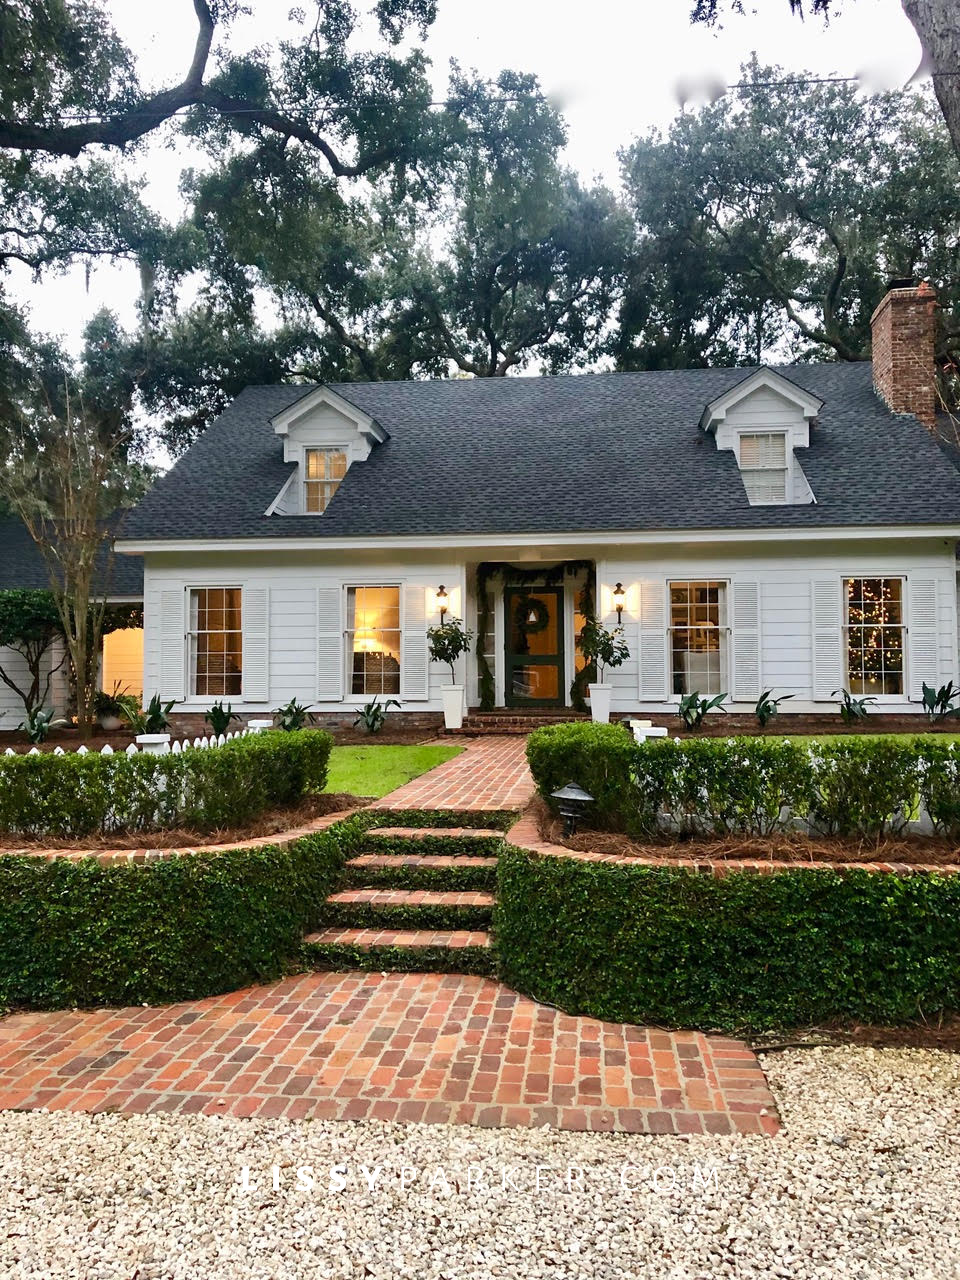 House Crush No 52 -St Simons Island